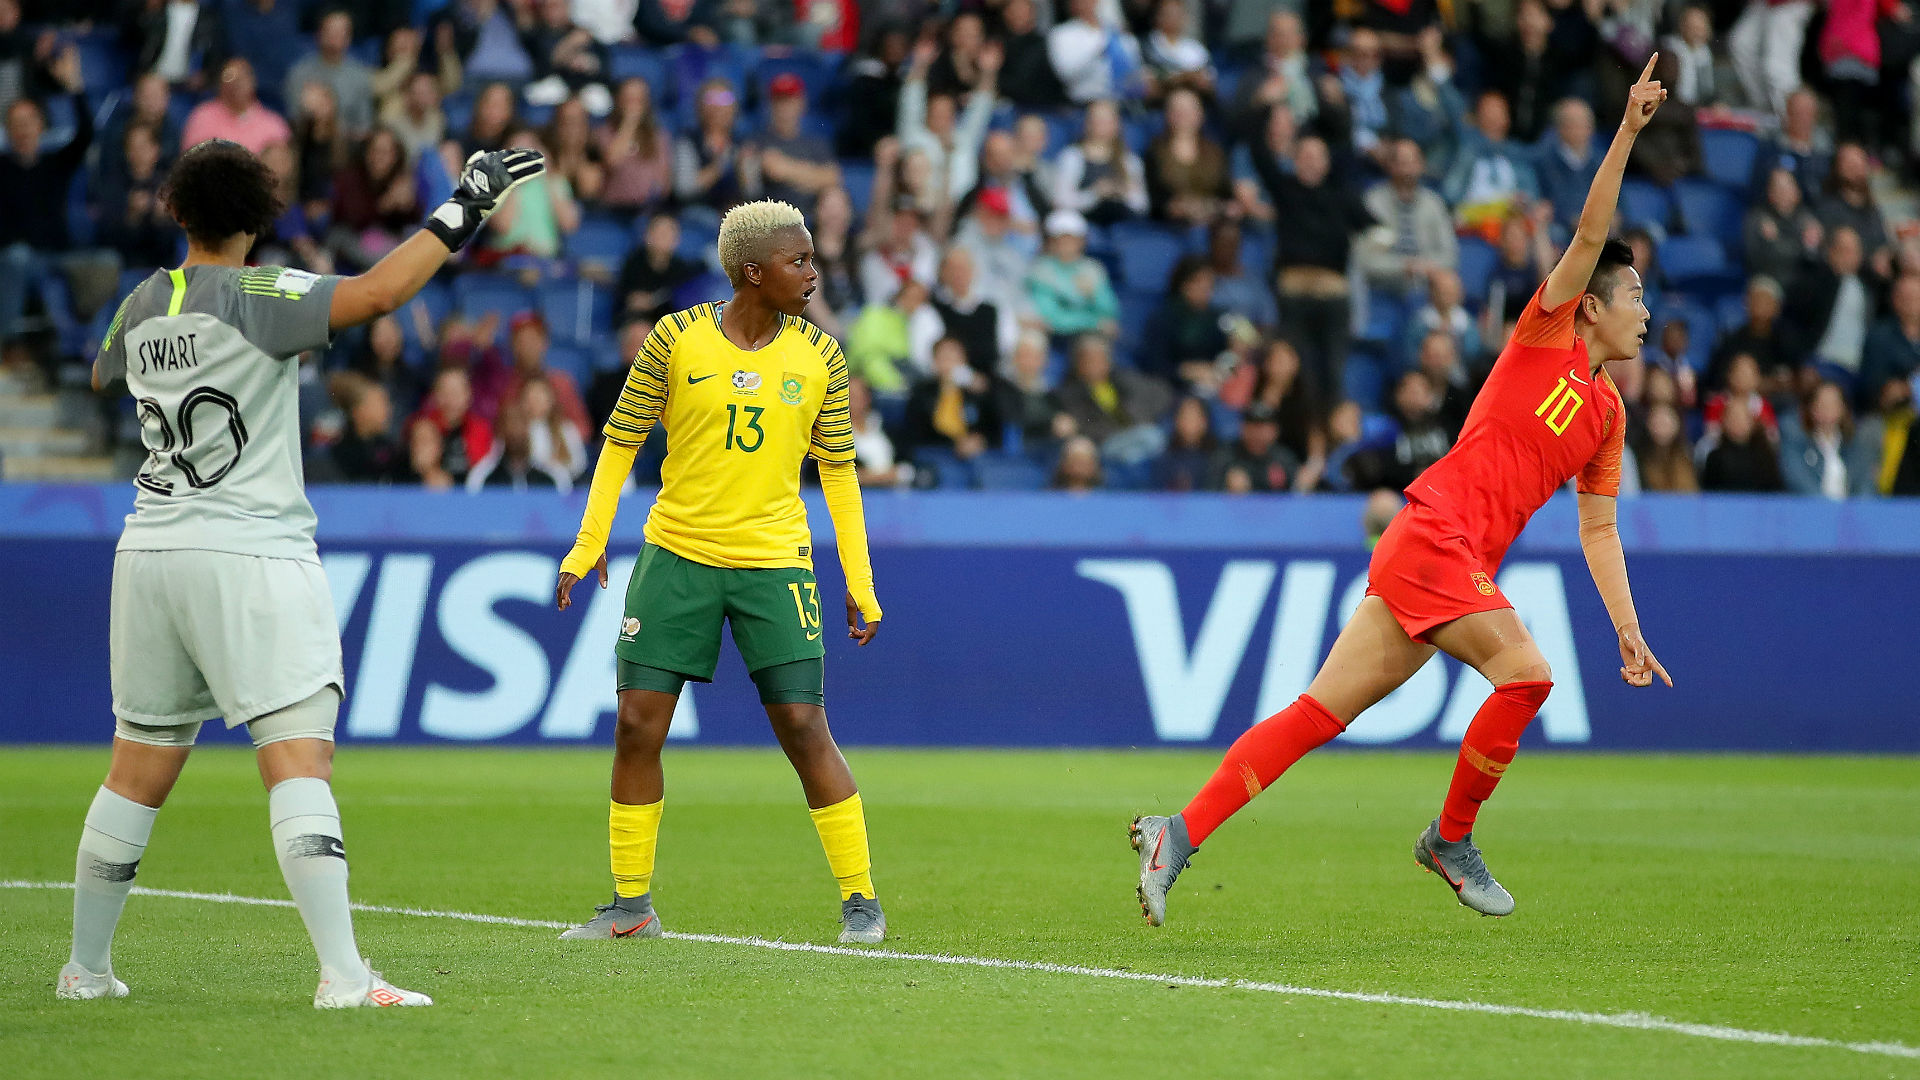 Women's World Cup 2019: China takes nail-biter over South Africa